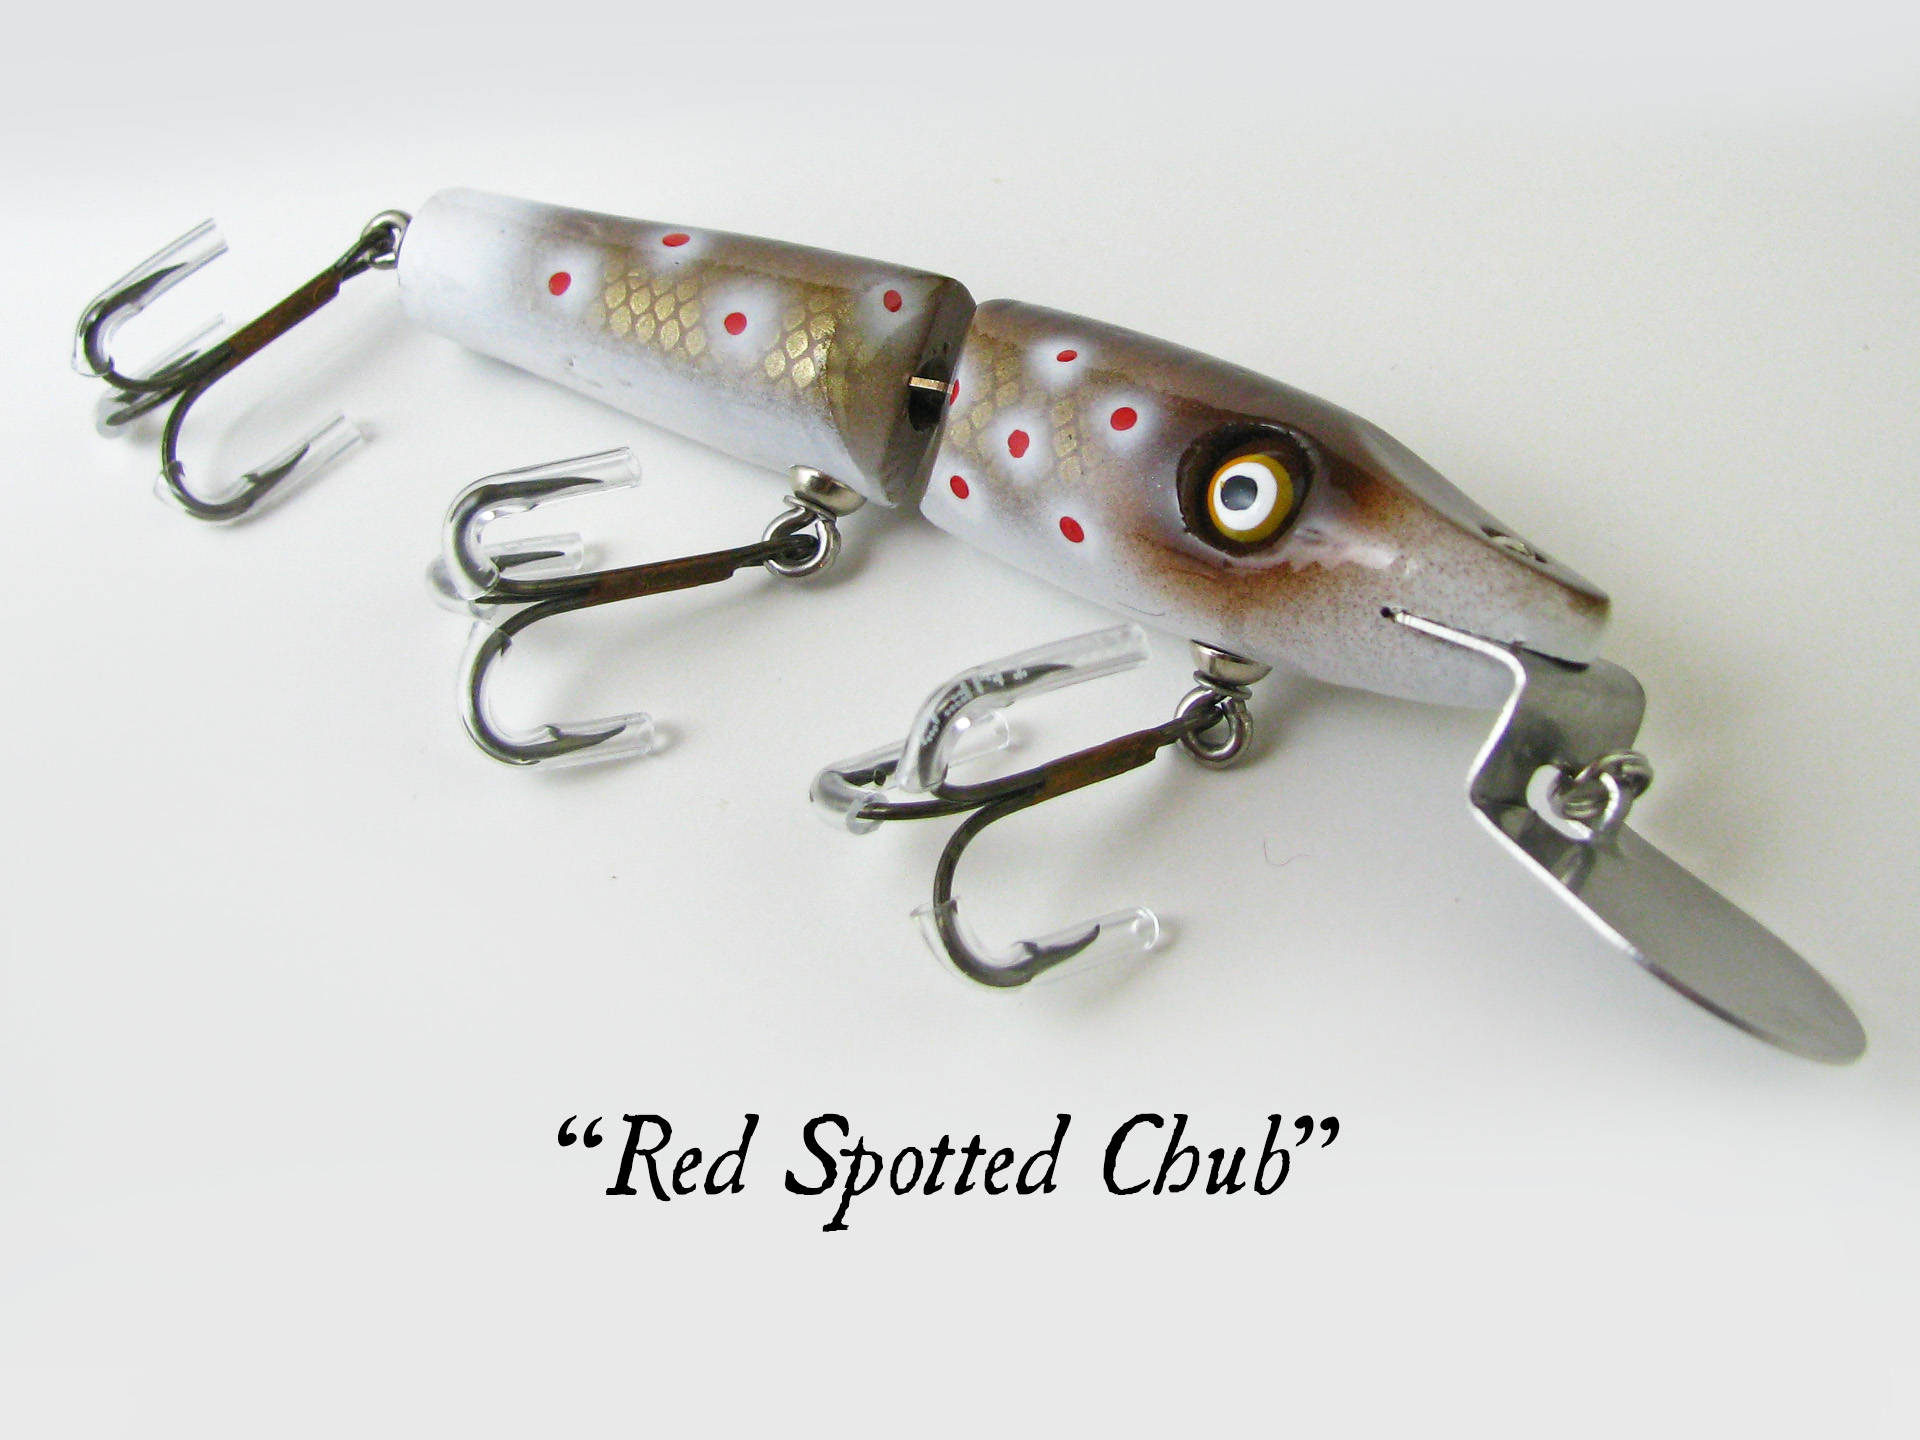 Jointed Piko Plug_Red Spotted Chub.jpg